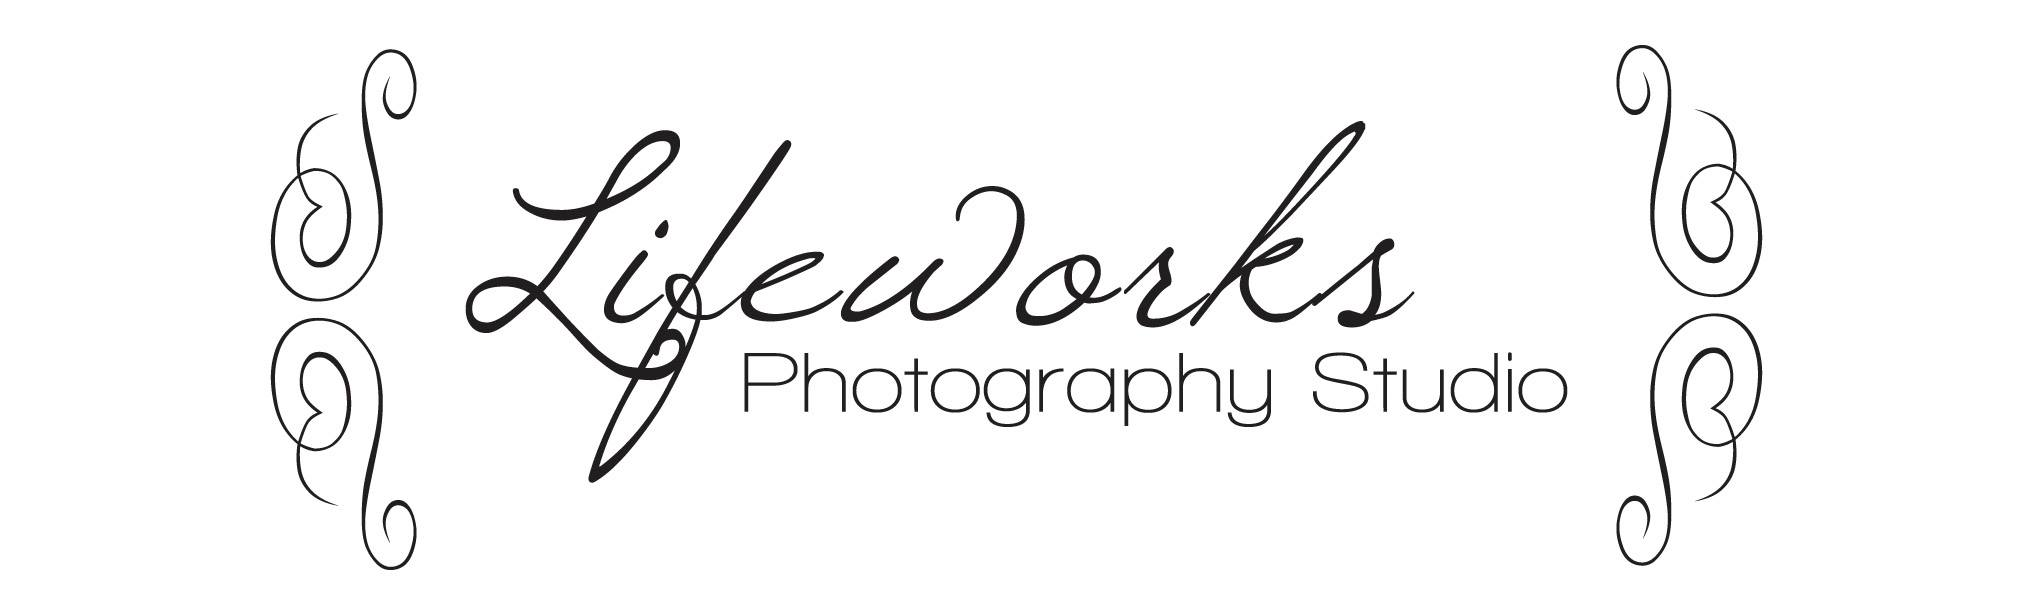 Lifeworks Photography Studio